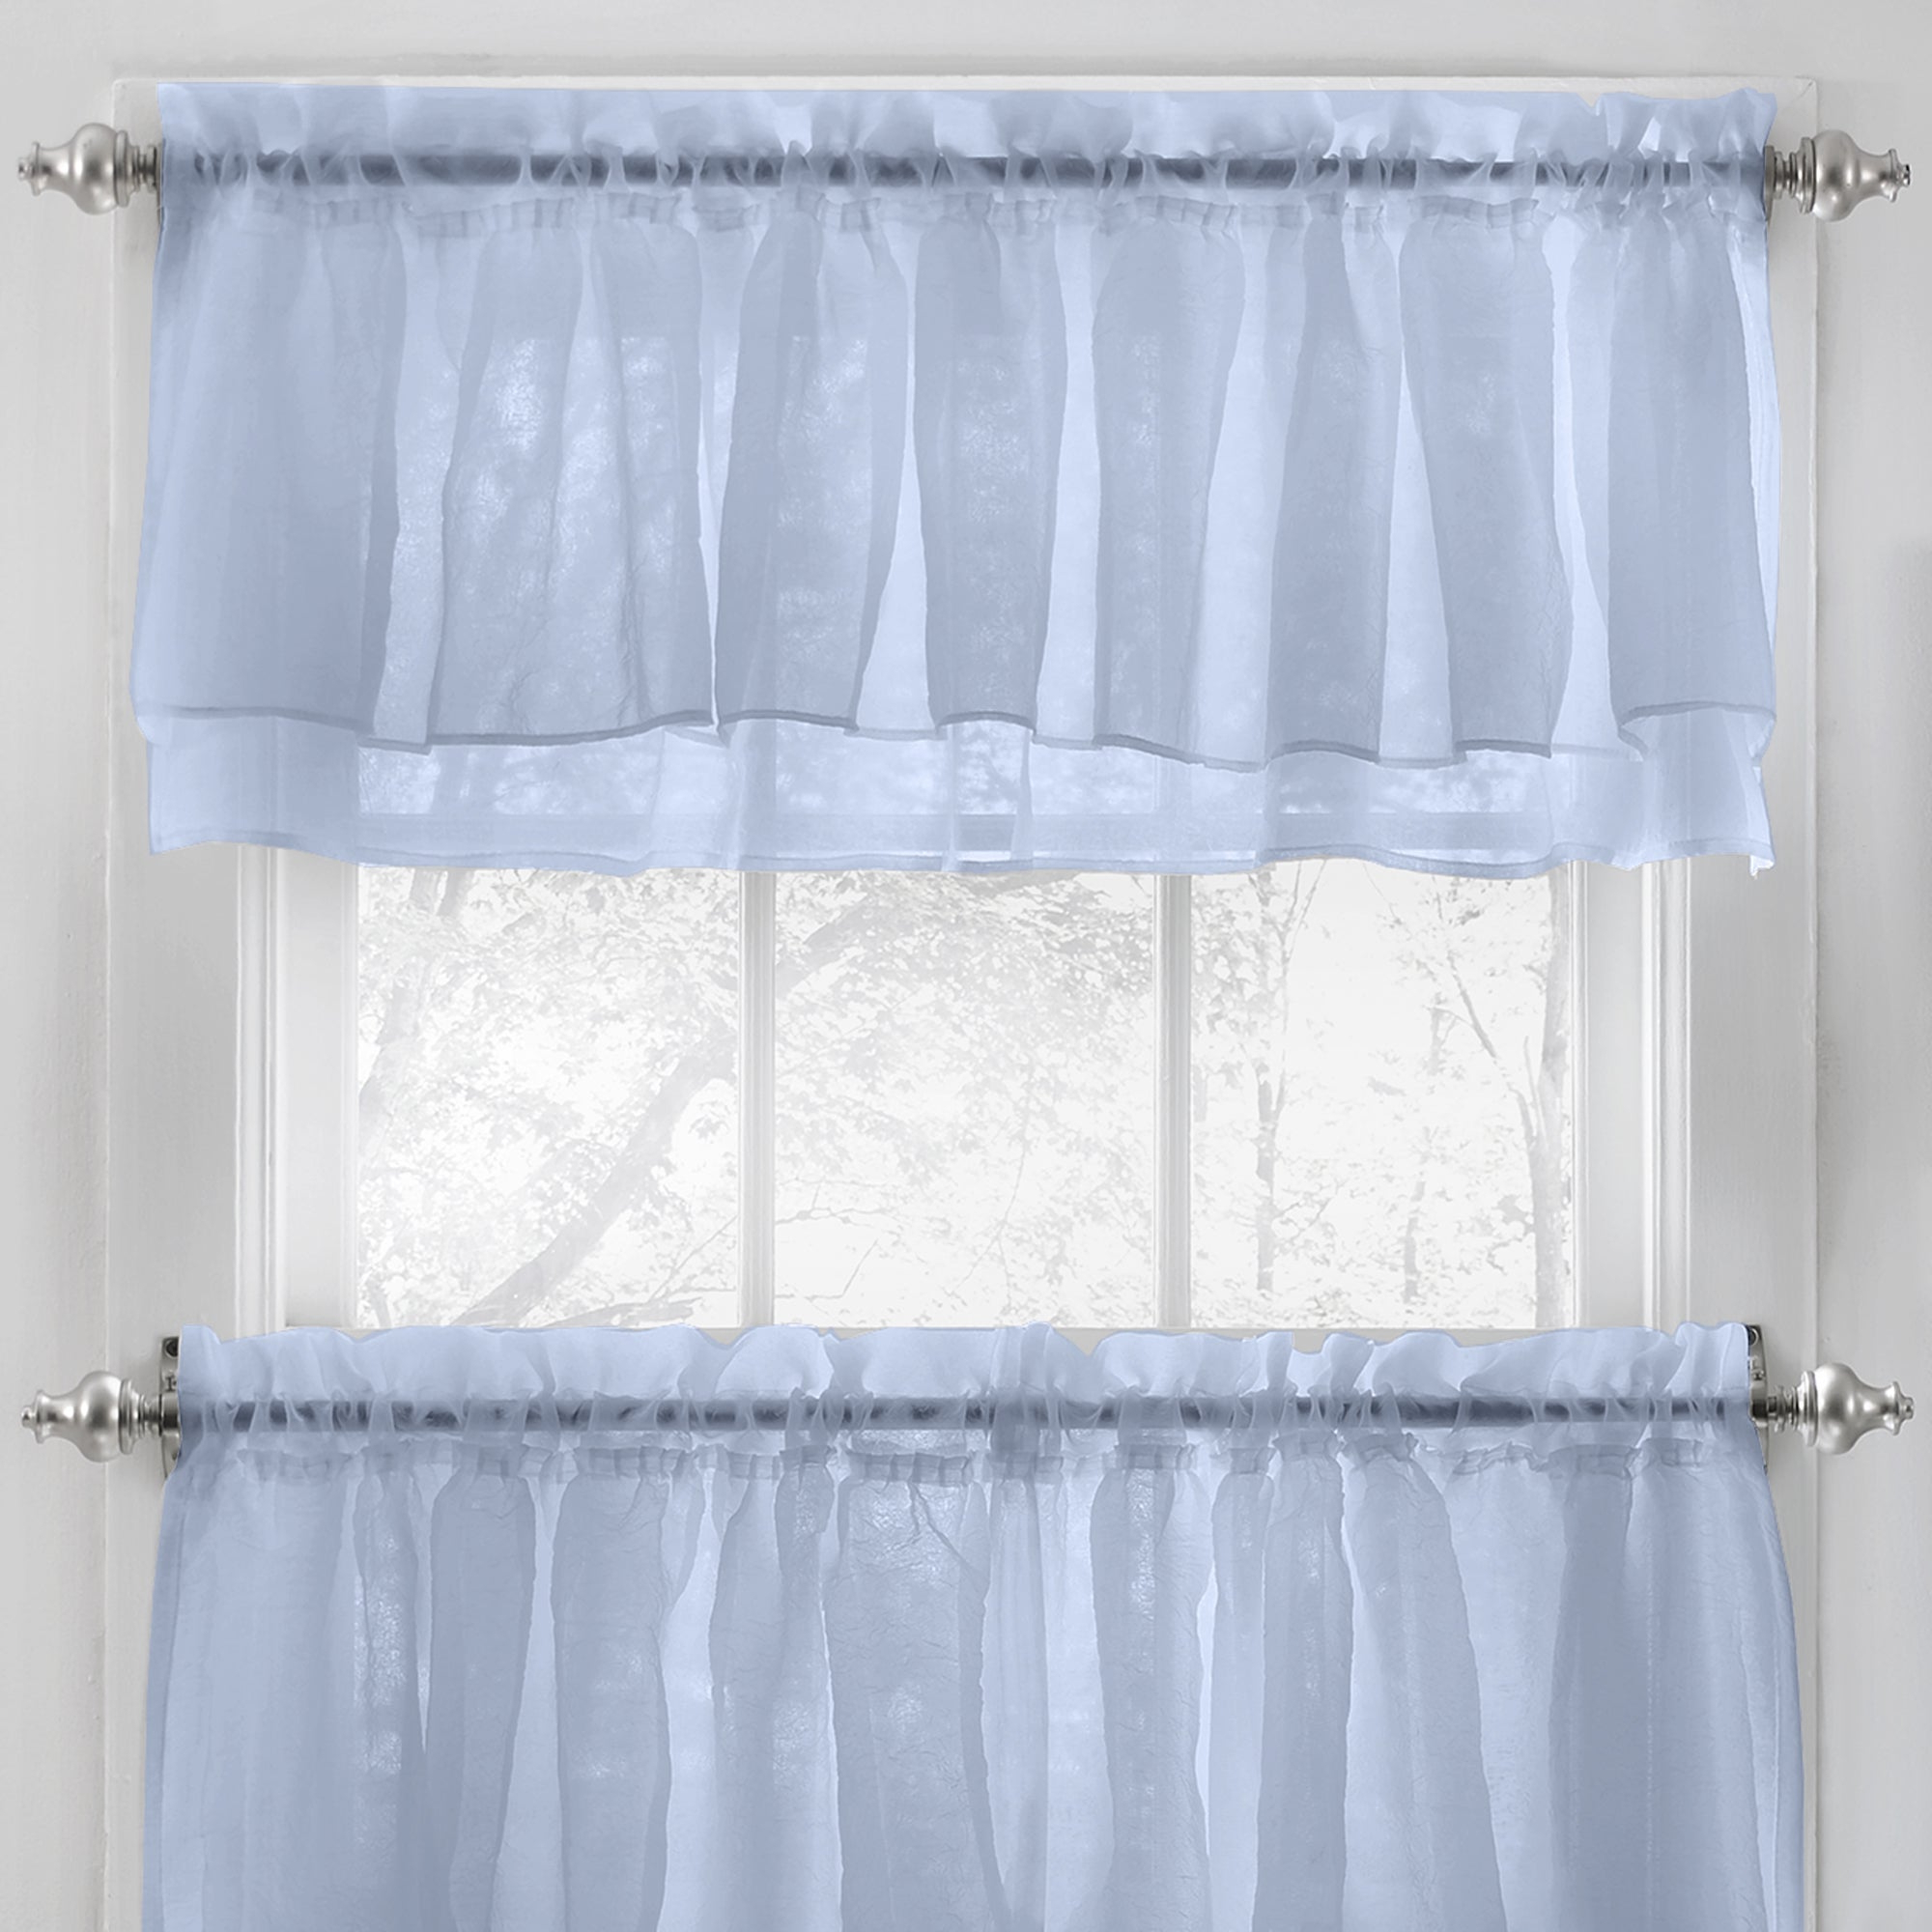 Elegant Crushed Voile Ruffle Window Curtain Pieces Regarding Current Elegant Crushed Voile Ruffle Blue/white/pink/purple/beige Window Curtain  Pieces With Optional Valance And Tiers (Gallery 4 of 20)